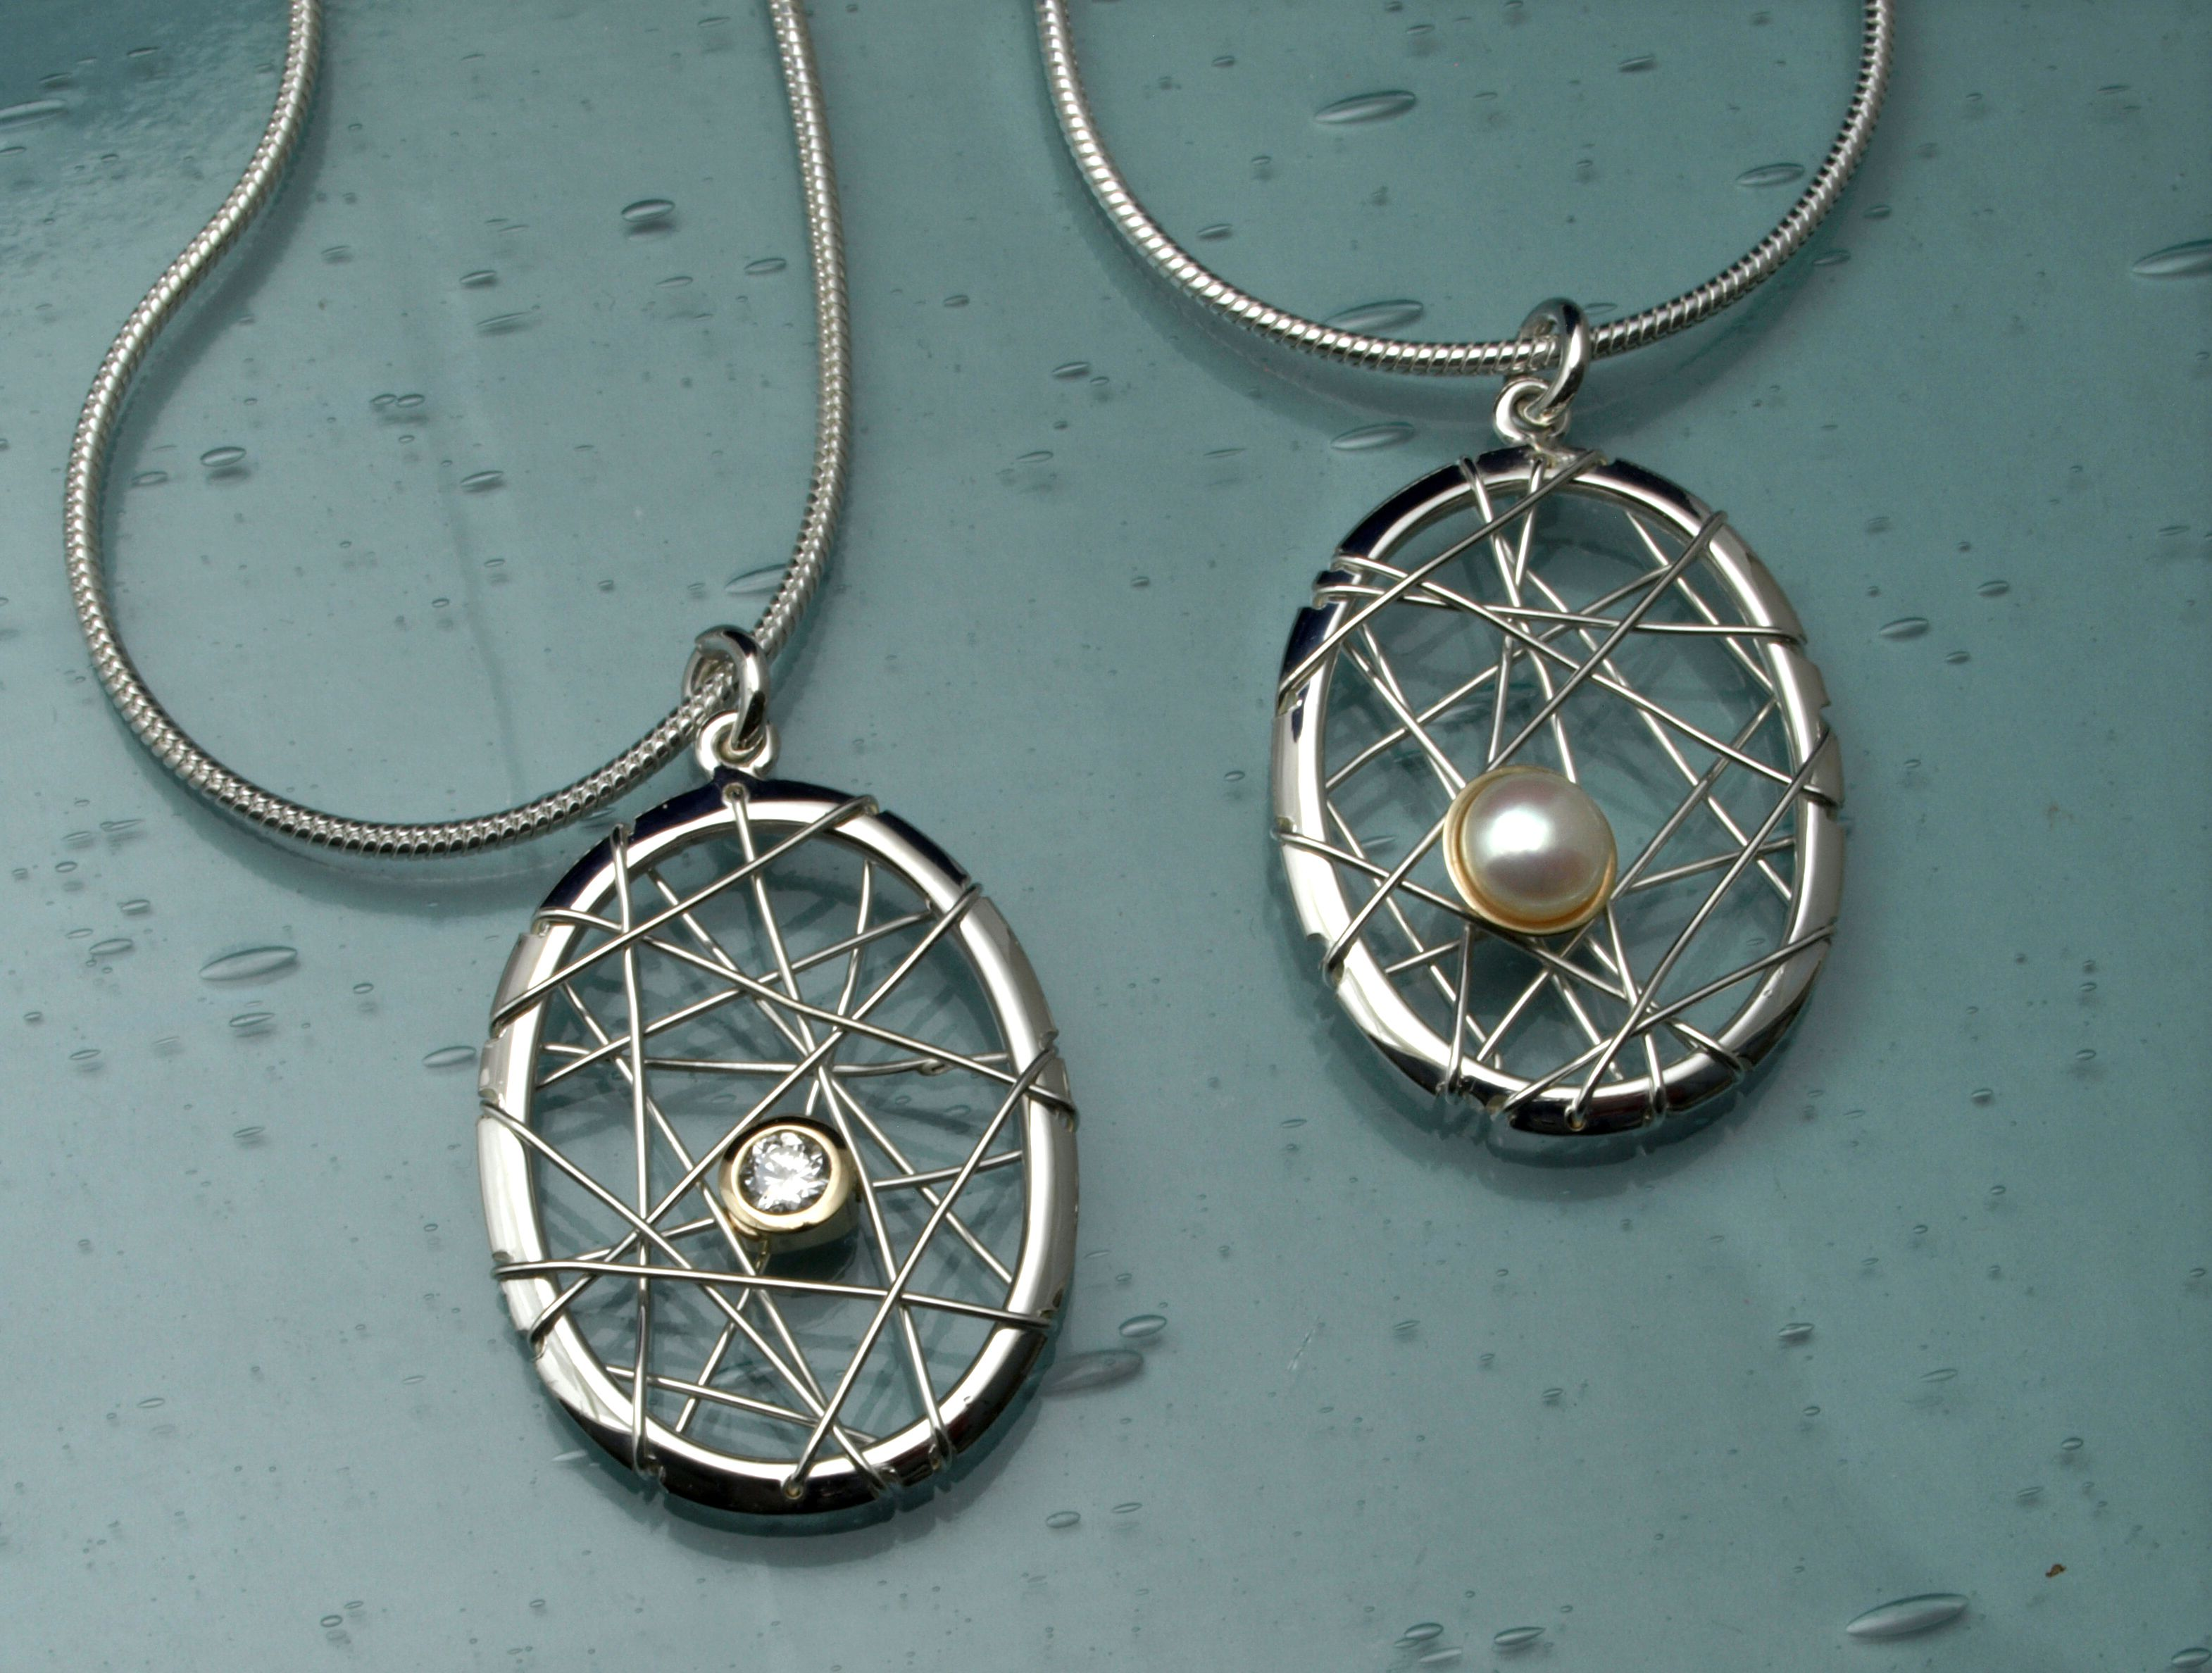 Silver and gold dream catcher pendants set with customers diamond